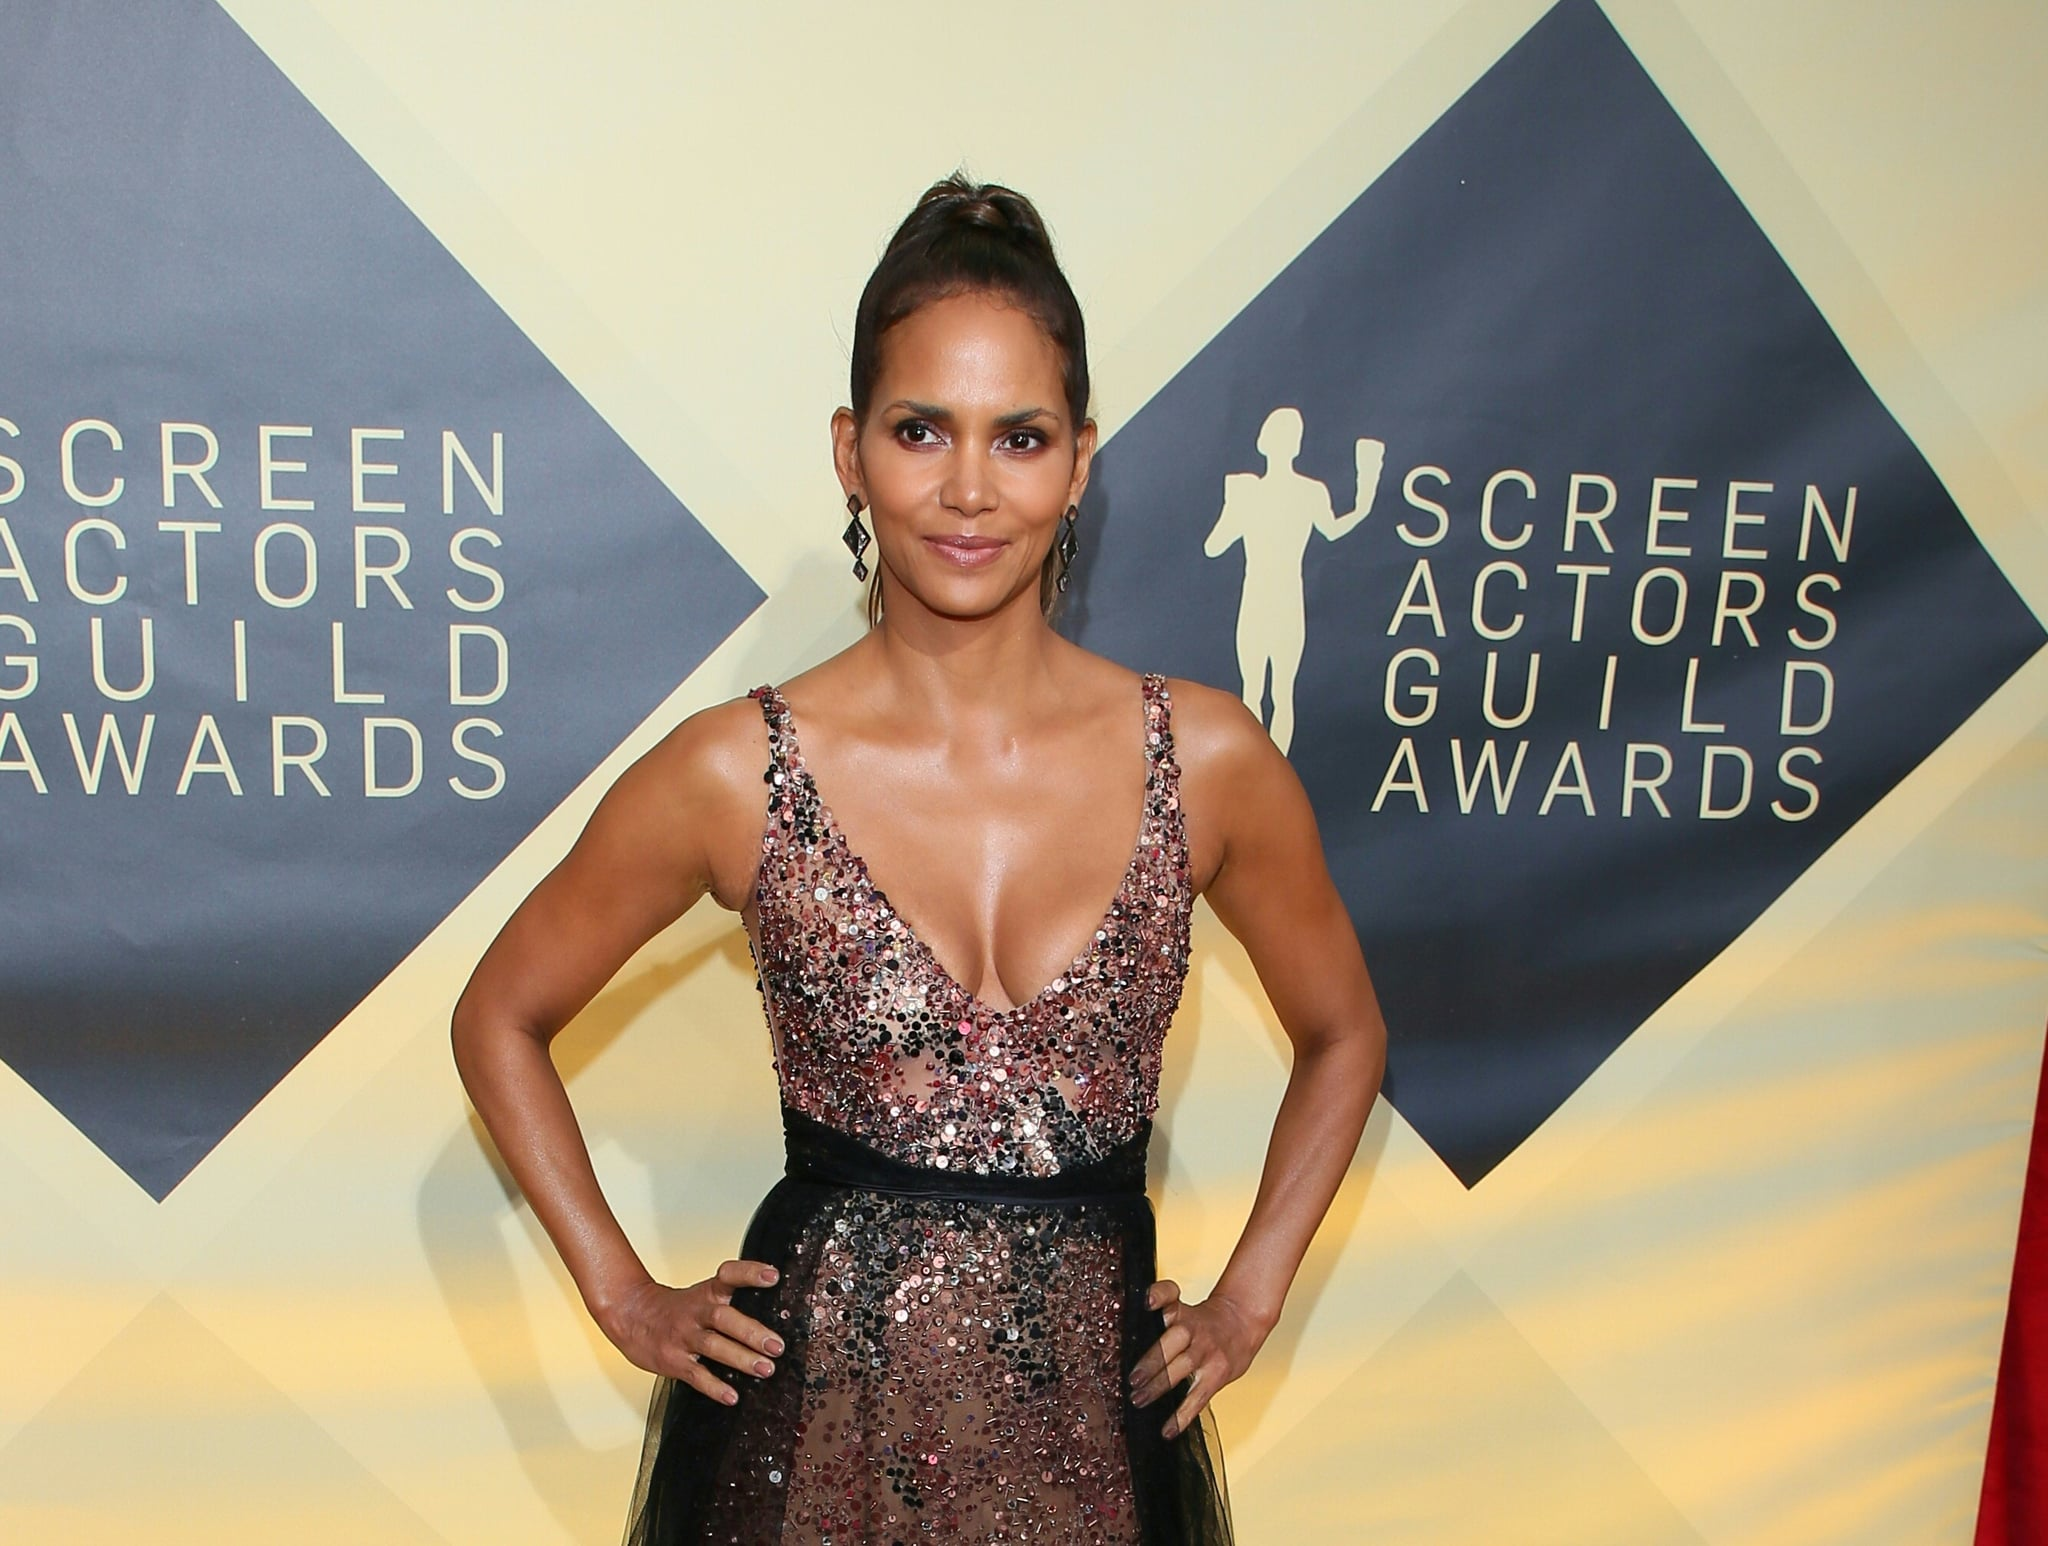 Halle Berry arrives for the 24th Annual Screen Actors Guild Awards at the Shrine Exposition centre on January 21, 2018, in Los Angeles, California. / AFP PHOTO / Jean-Baptiste LACROIX        (Photo credit should read JEAN-BAPTISTE LACROIX/AFP/Getty Images)